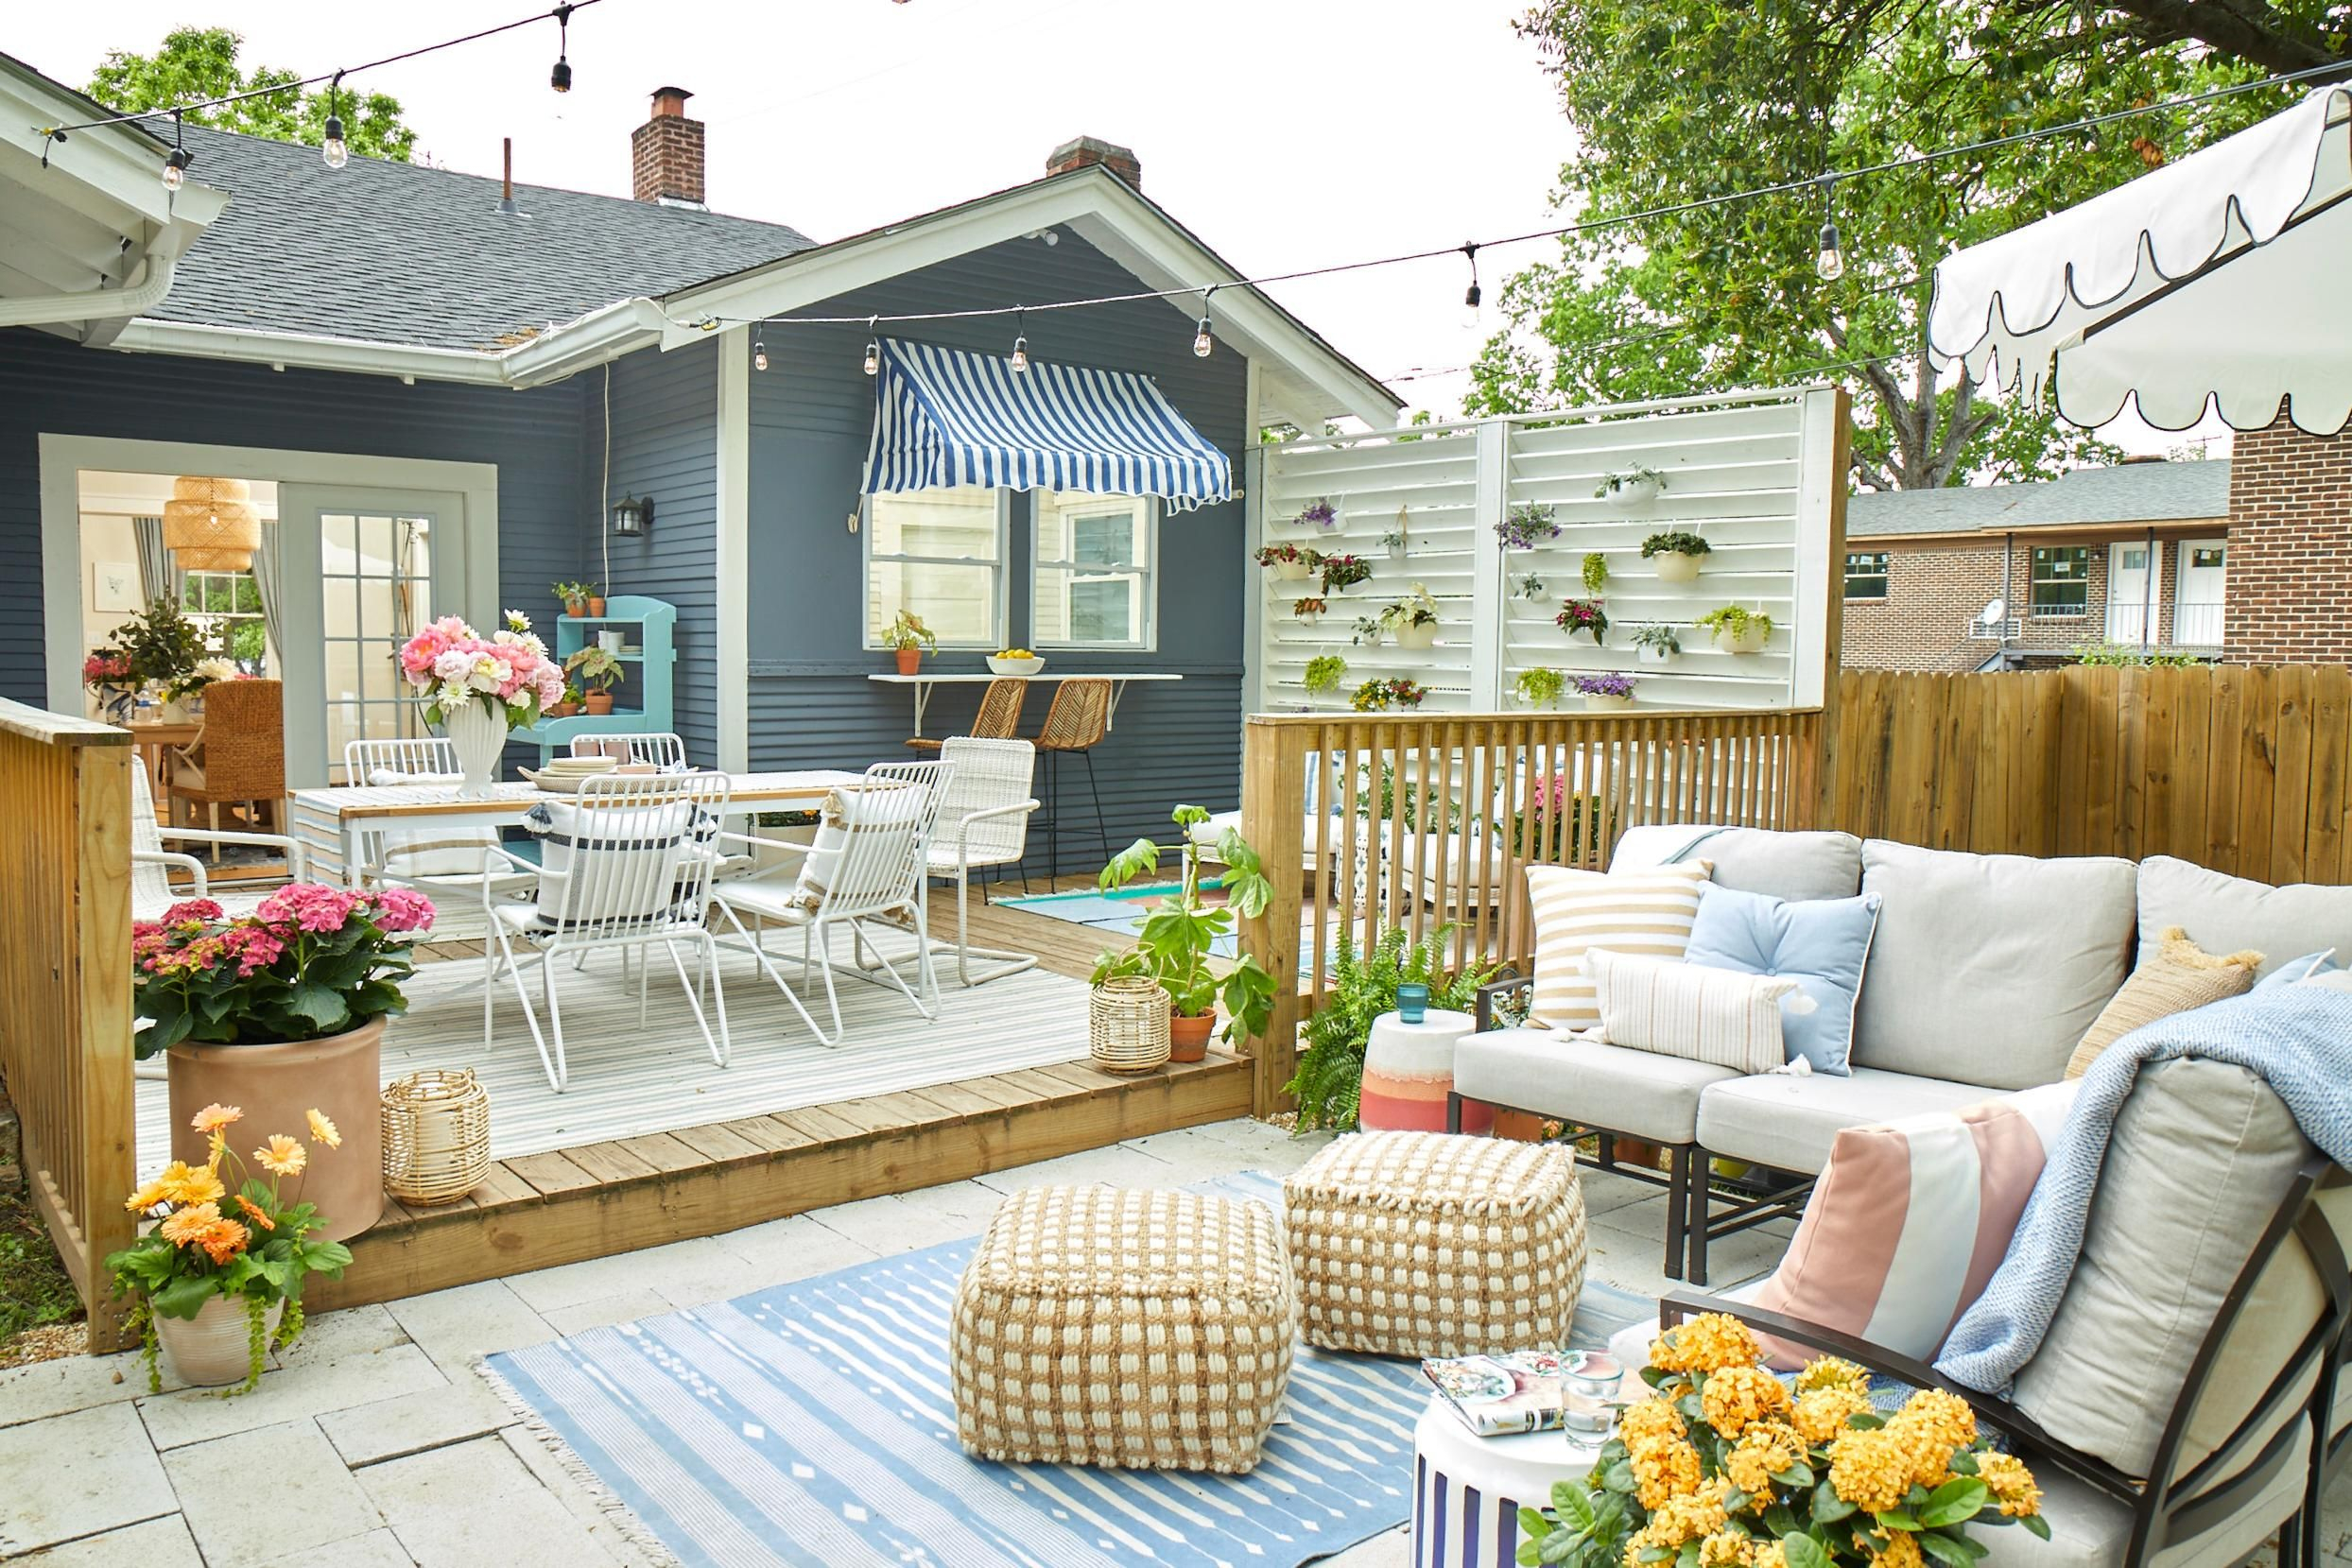 35 Best Patio And Porch Design Ideas Decorating Your Outdoor Space in Backyard Patios Ideas